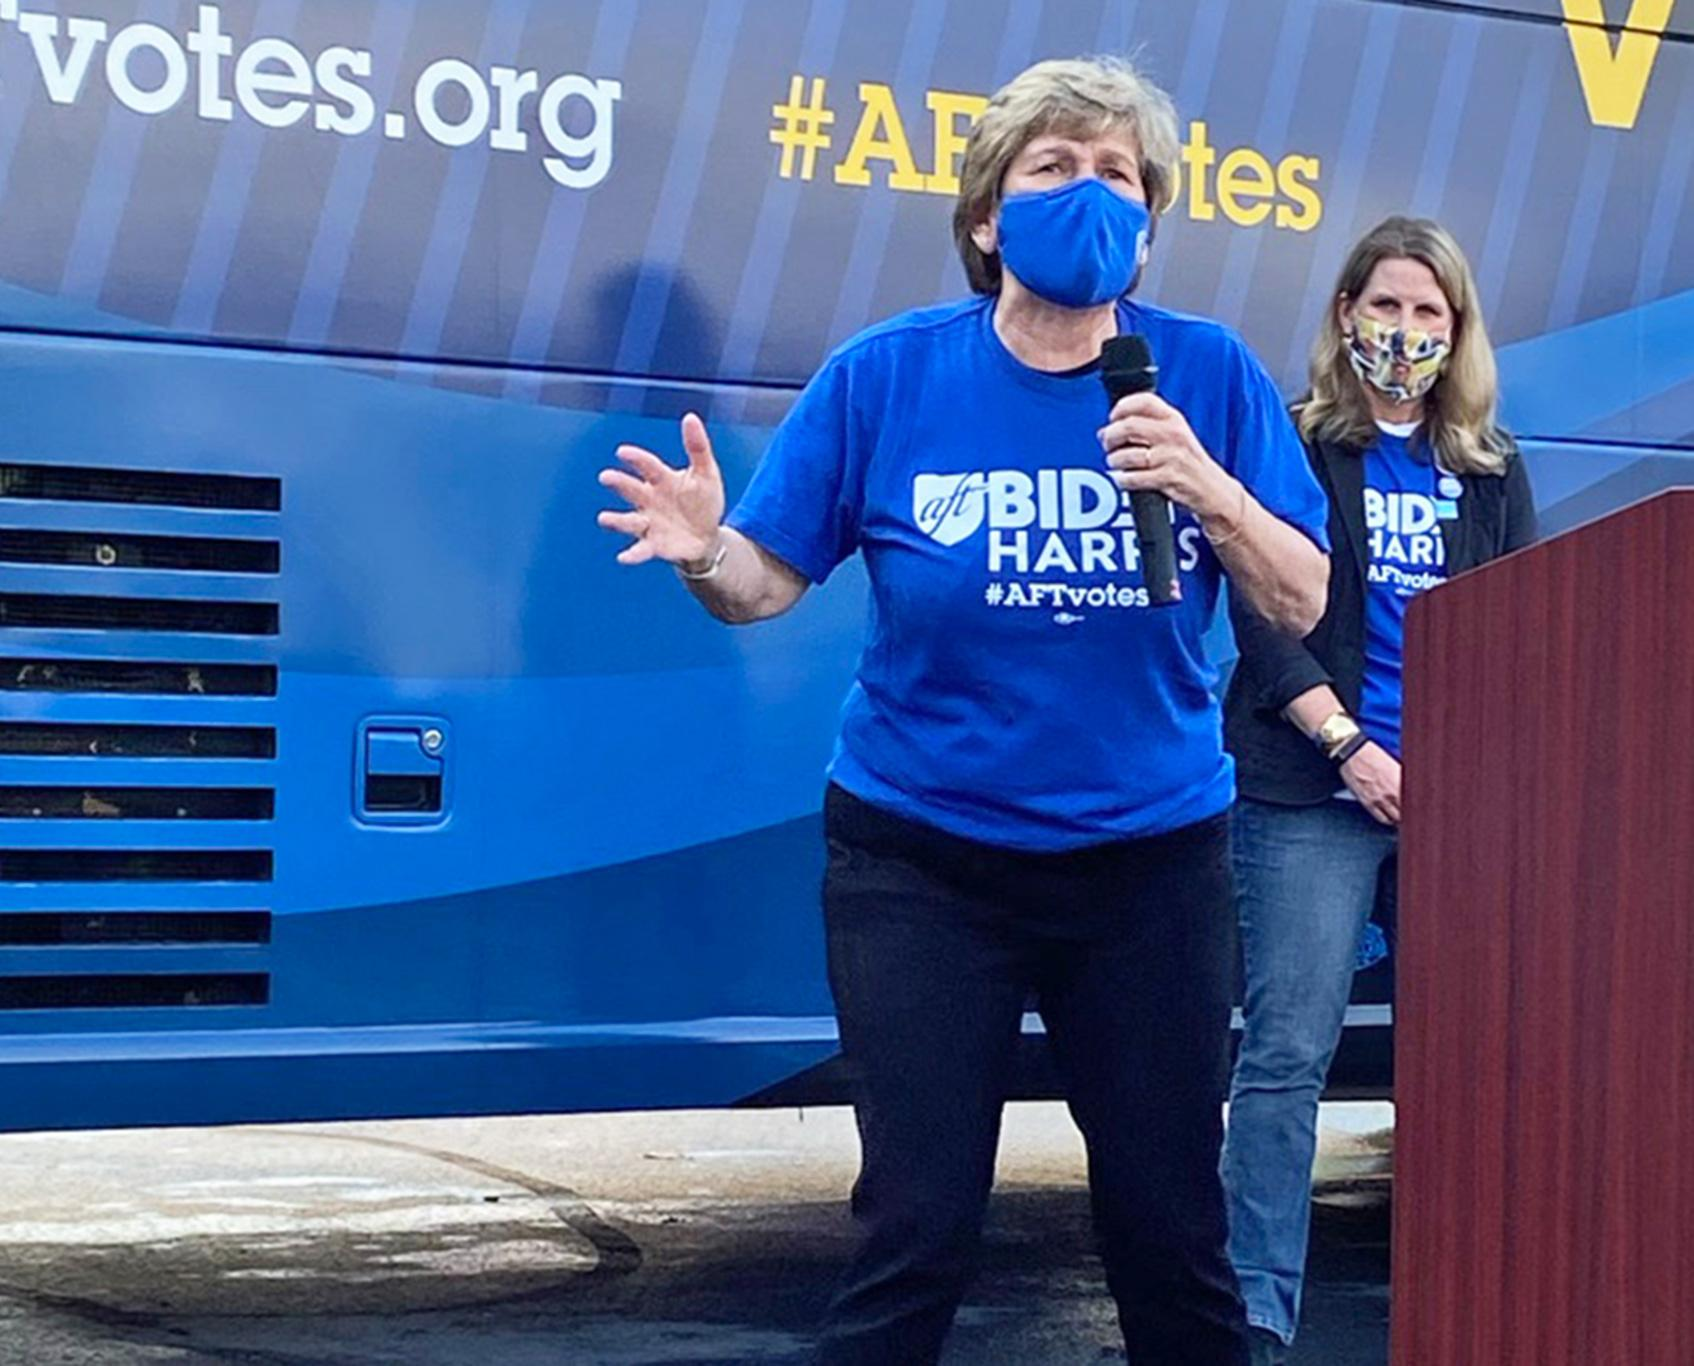 Randi Weingarten on AFT Votes bus